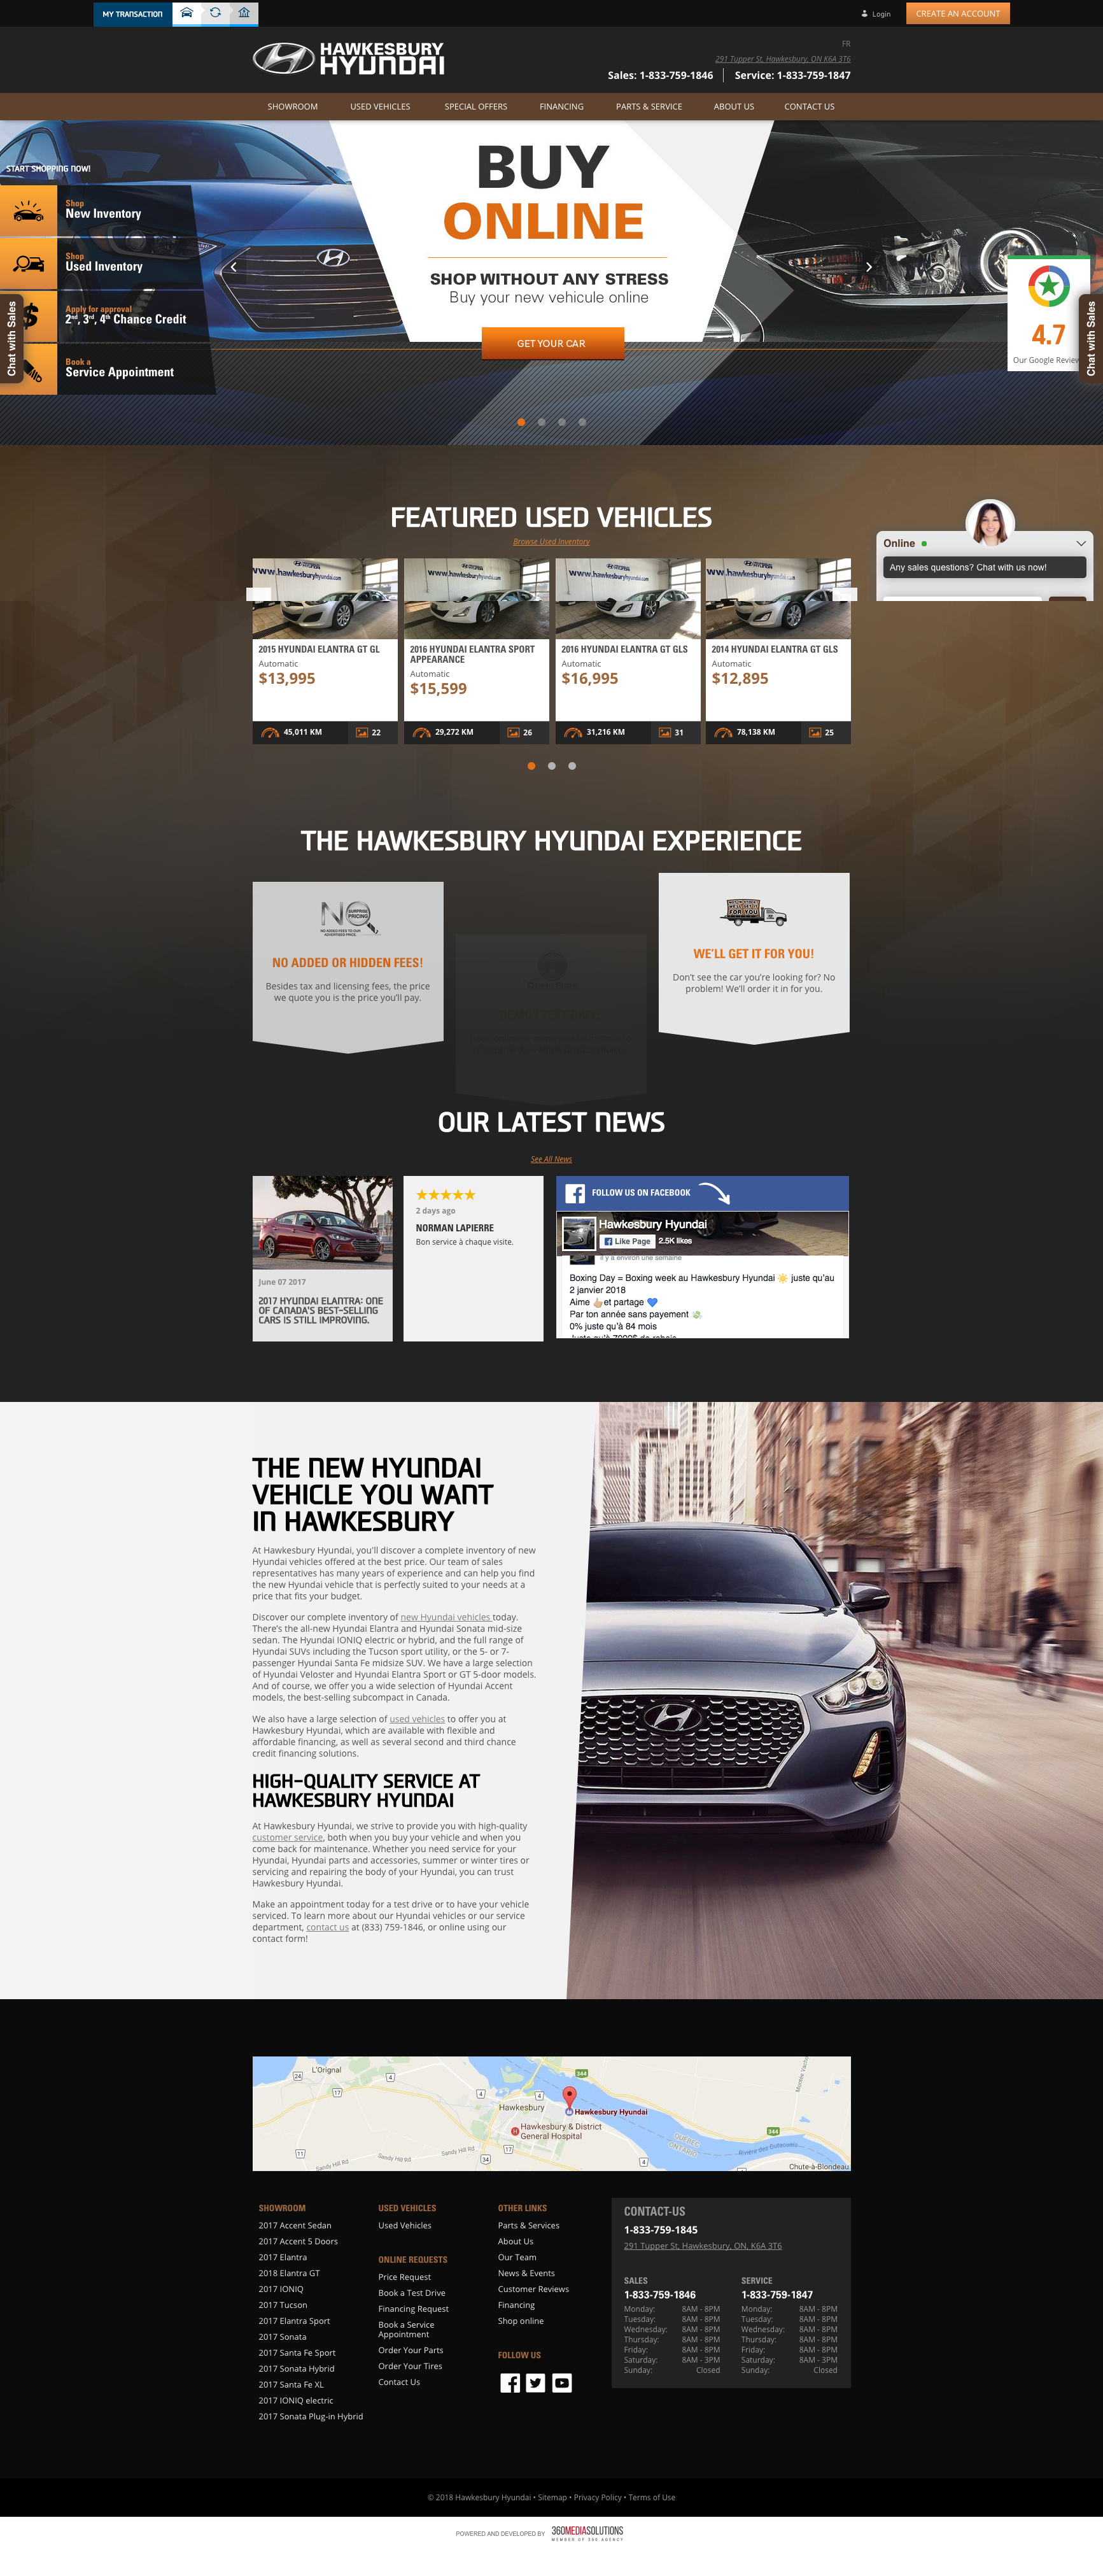 Best Promotional Design For Car Dealers Get Inspired Today Webdesign Design Graphicdesign Car Websites Agenc Small Luxury Cars New Trucks Cars For Sale